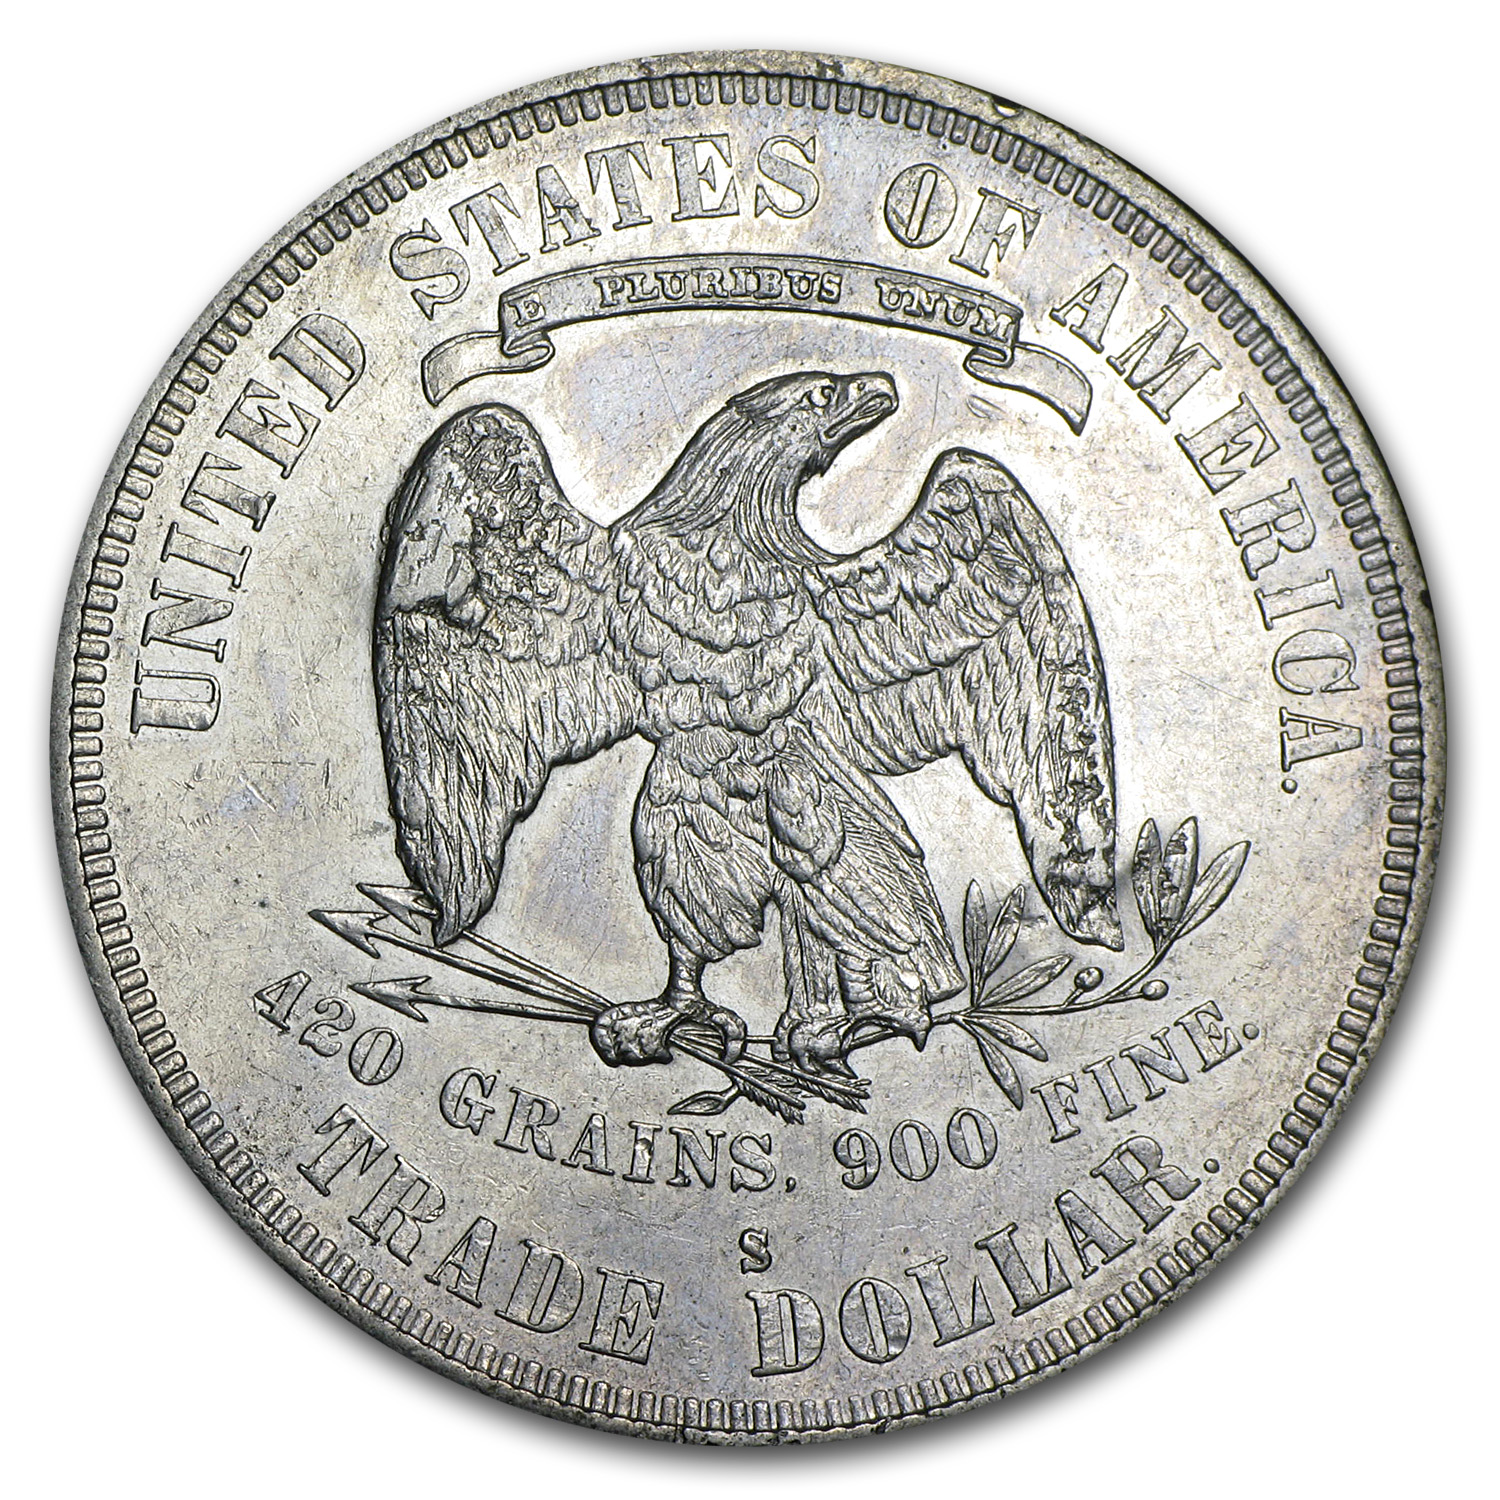 1878-S Trade Dollar Almost Uncirculated (Chopmarks)